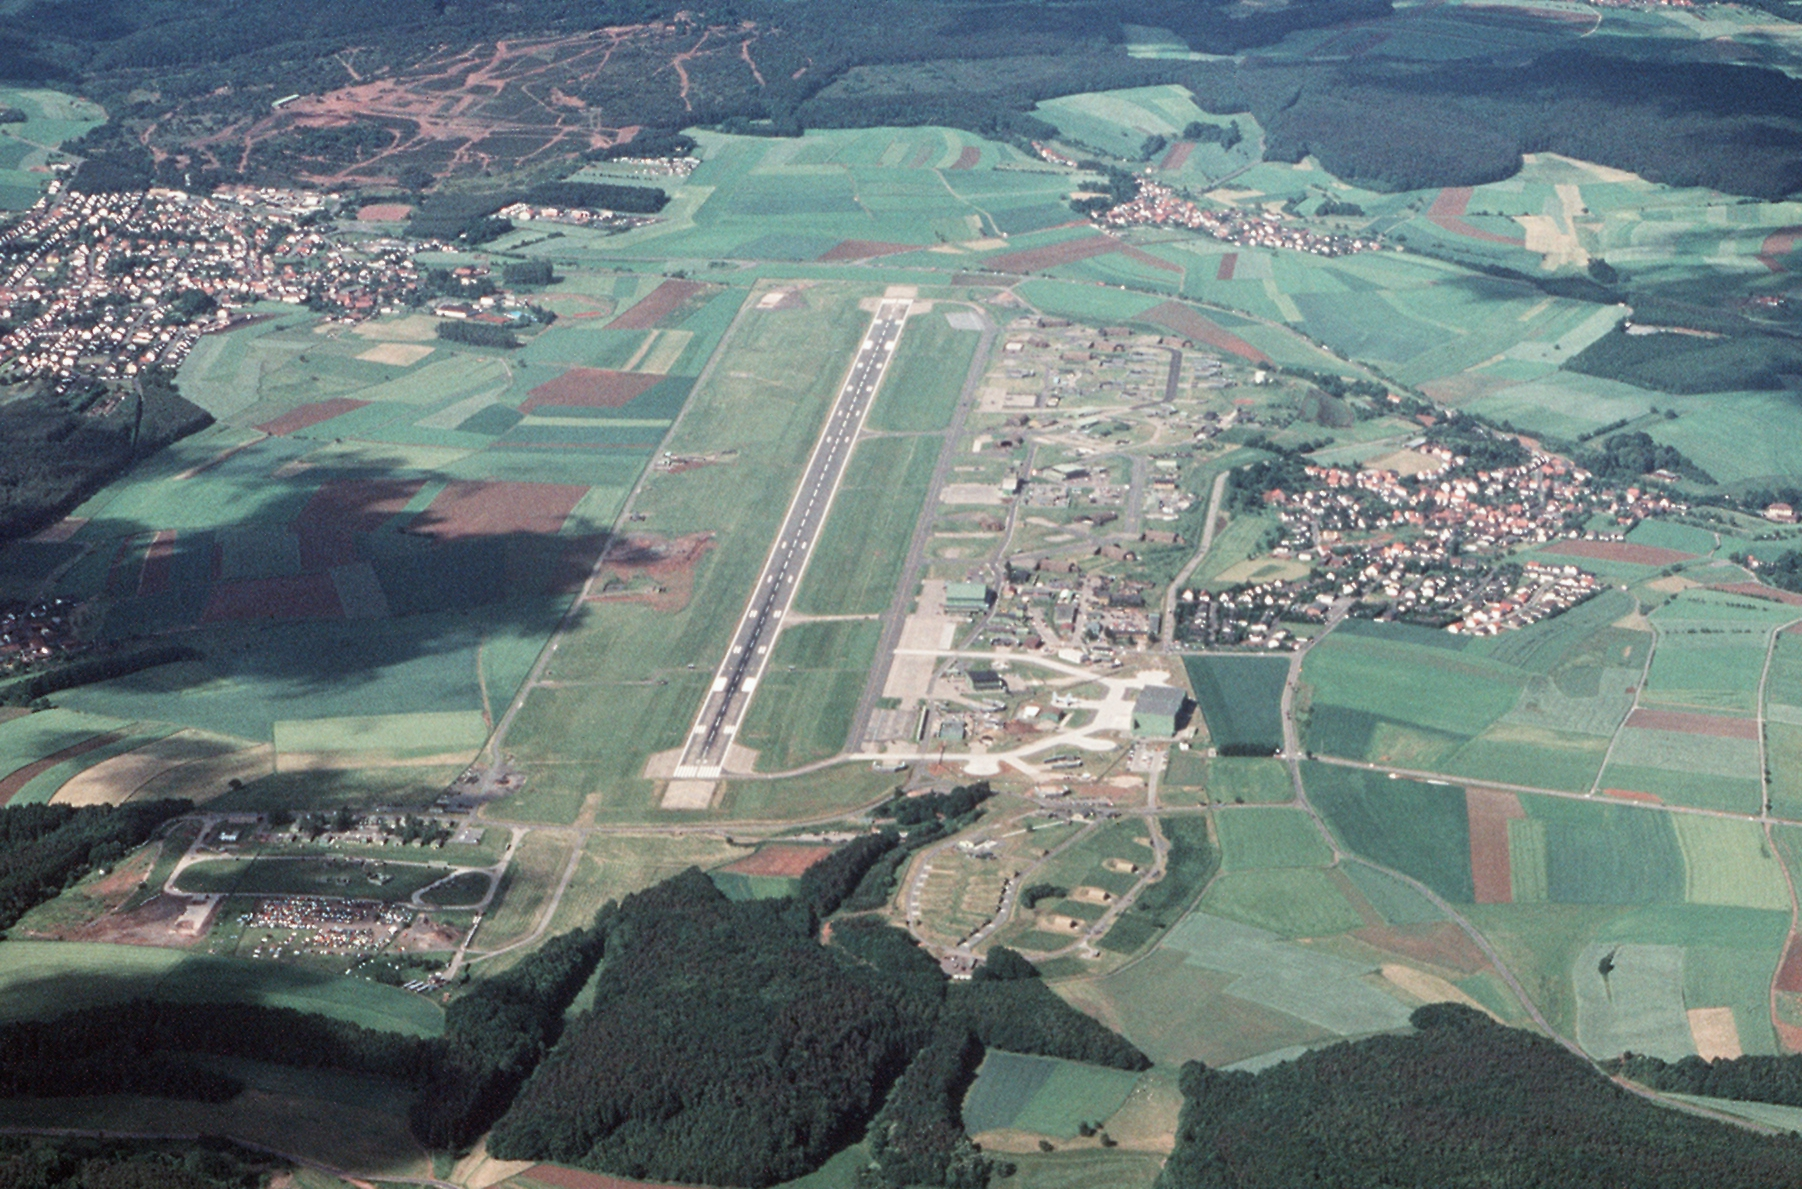 Map Of Germany Us Air Force Bases.File Sembach Air Base Aerial View 1989 Jpeg Wikimedia Commons